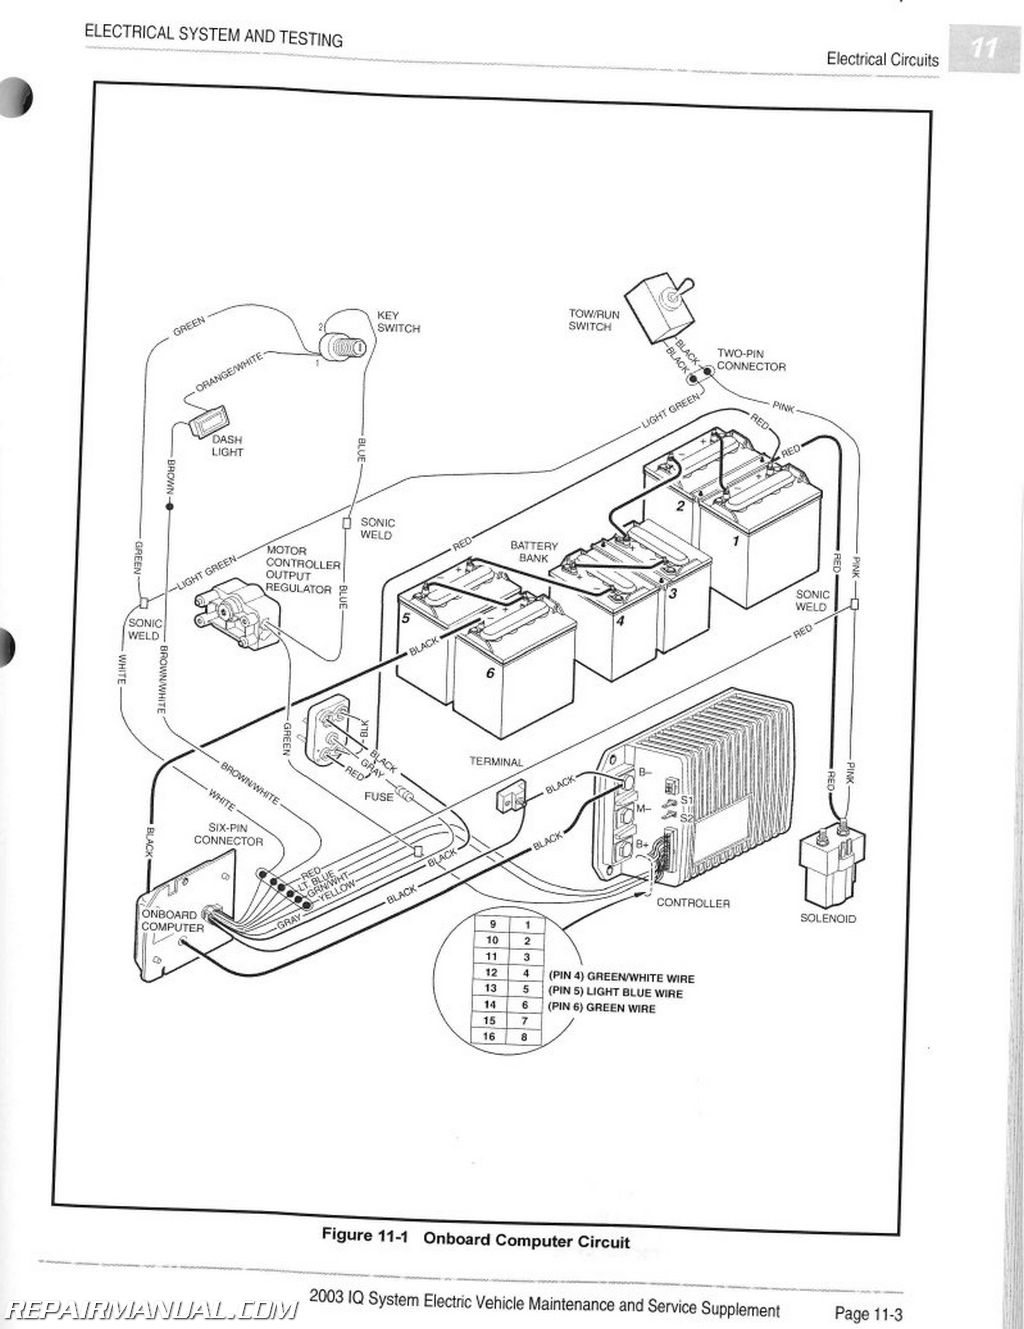 2003 Club Car IQ System Maintenance And Service Manual Supplement page 1?resize=665%2C863 gas club car wiring diagrams readingrat net 2003 club car wiring diagram at panicattacktreatment.co